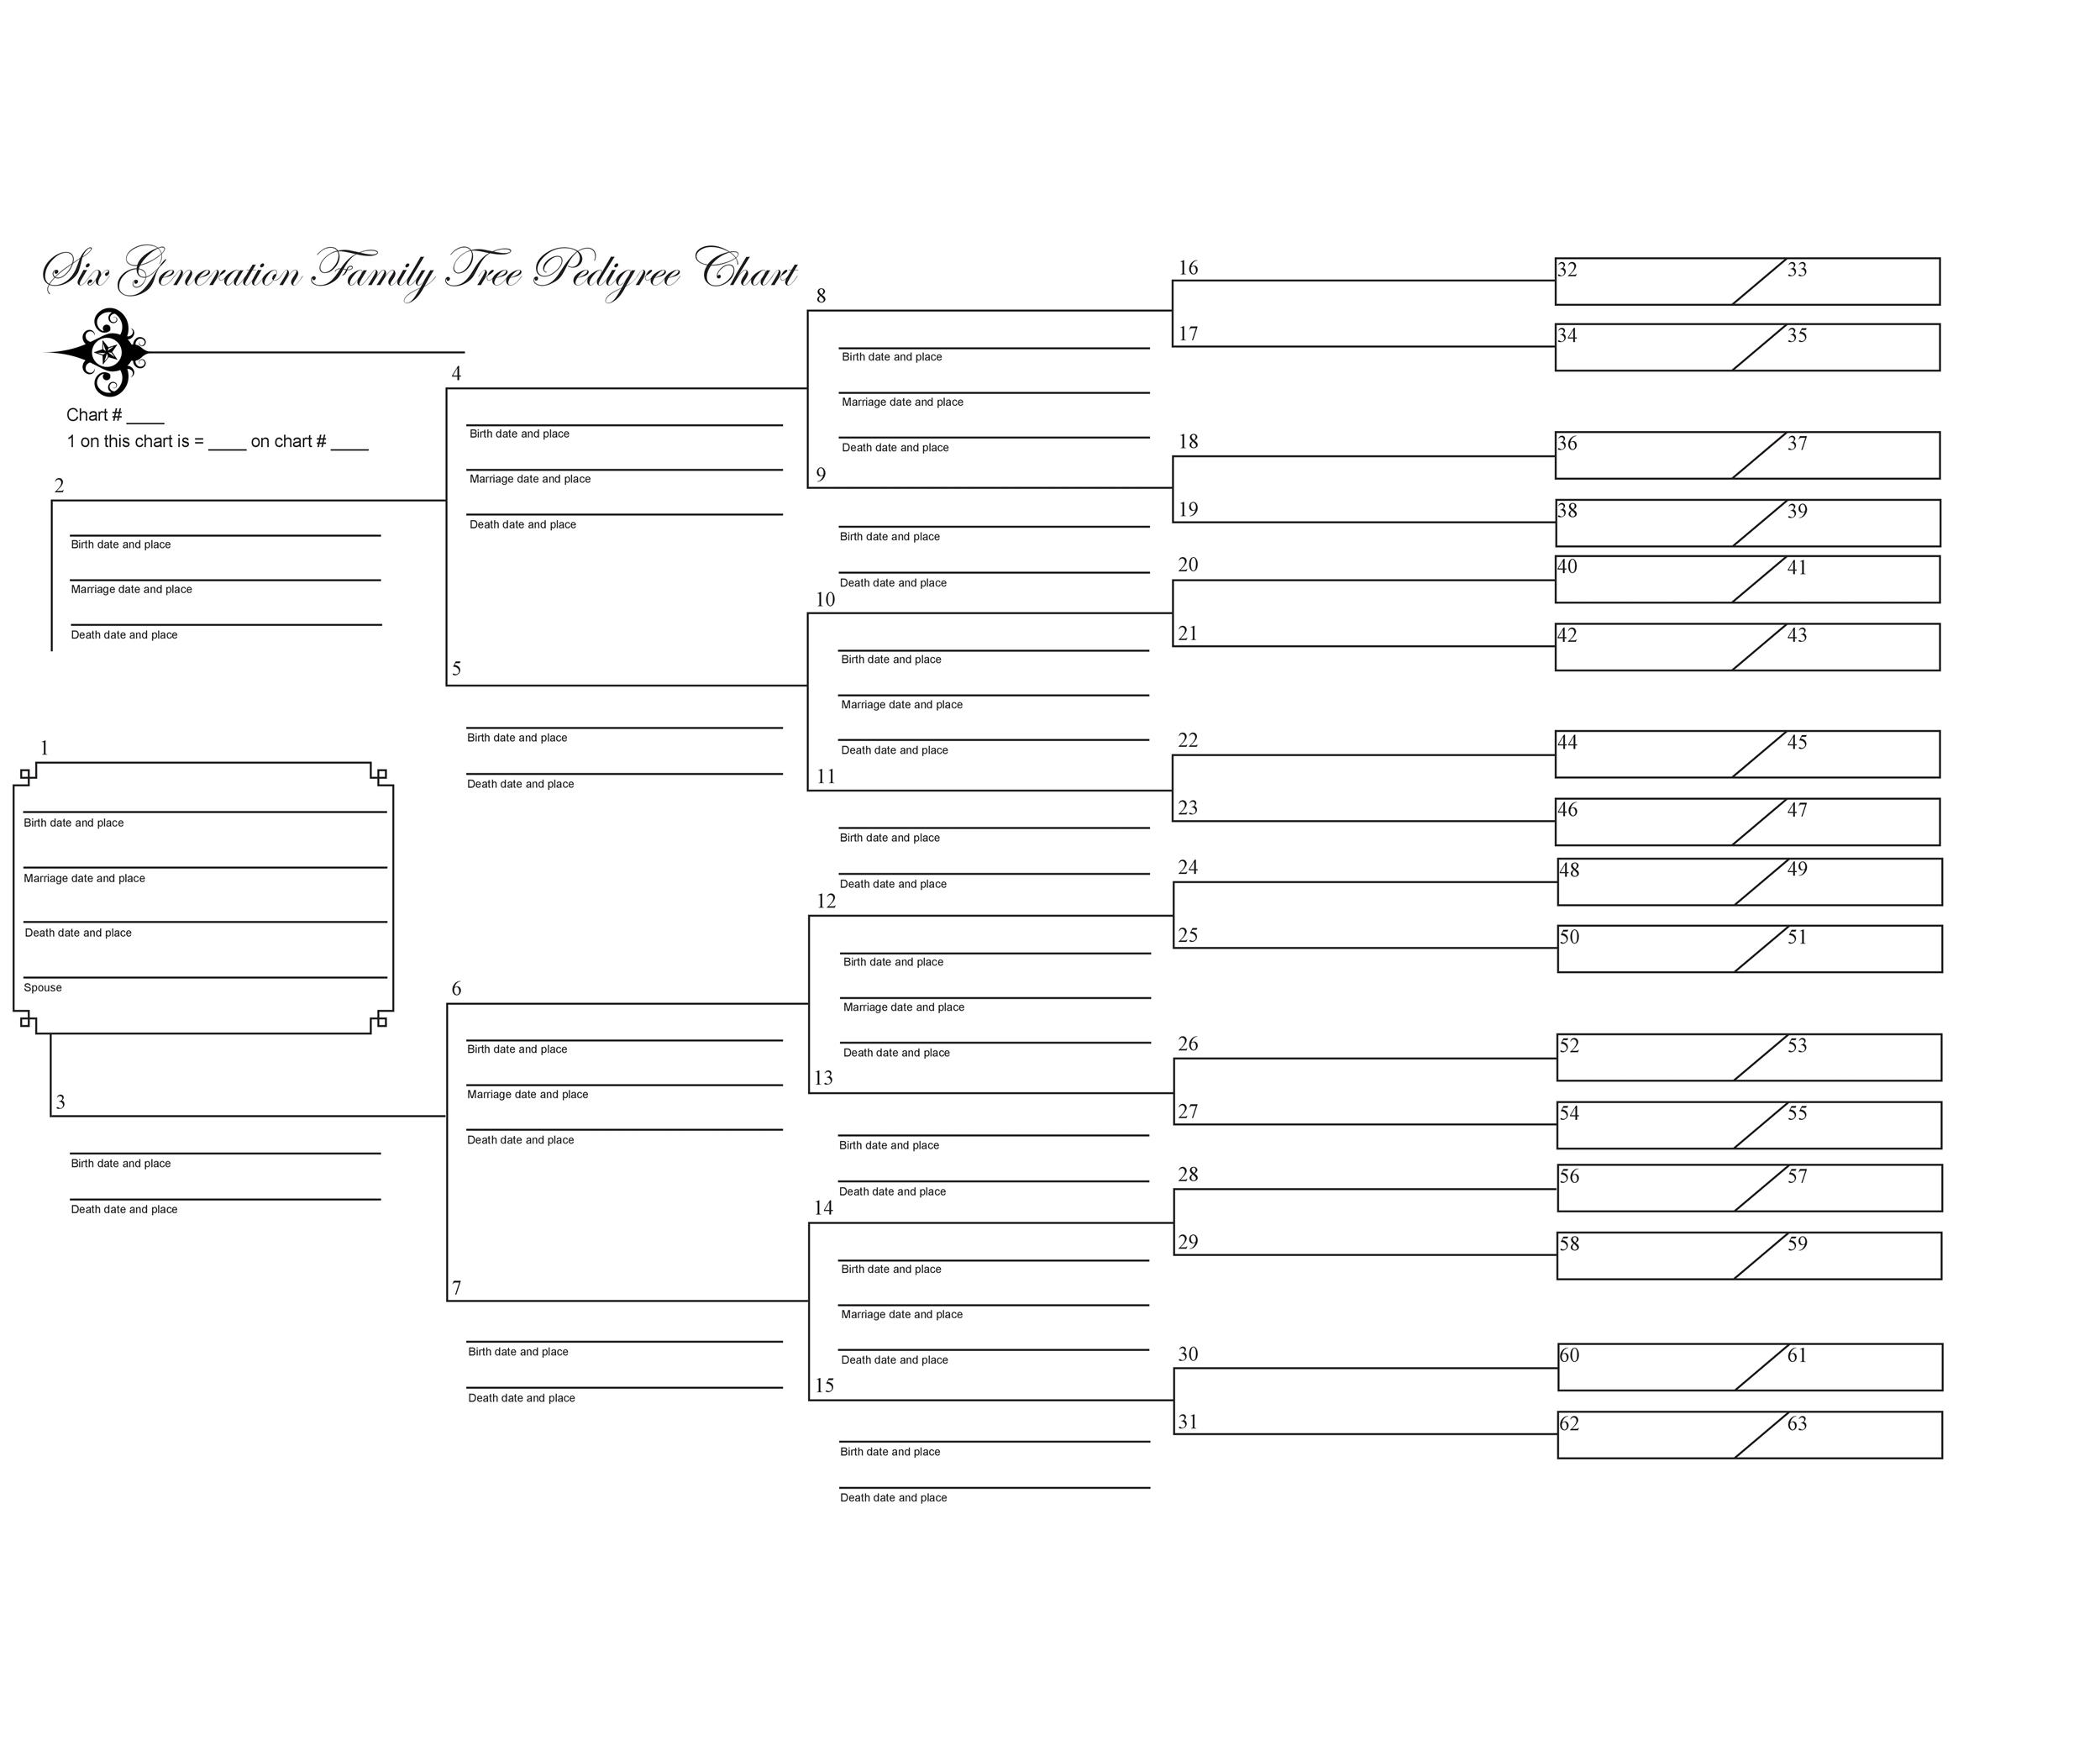 40 free family tree templates word excel pdf for Family tree templates with siblings